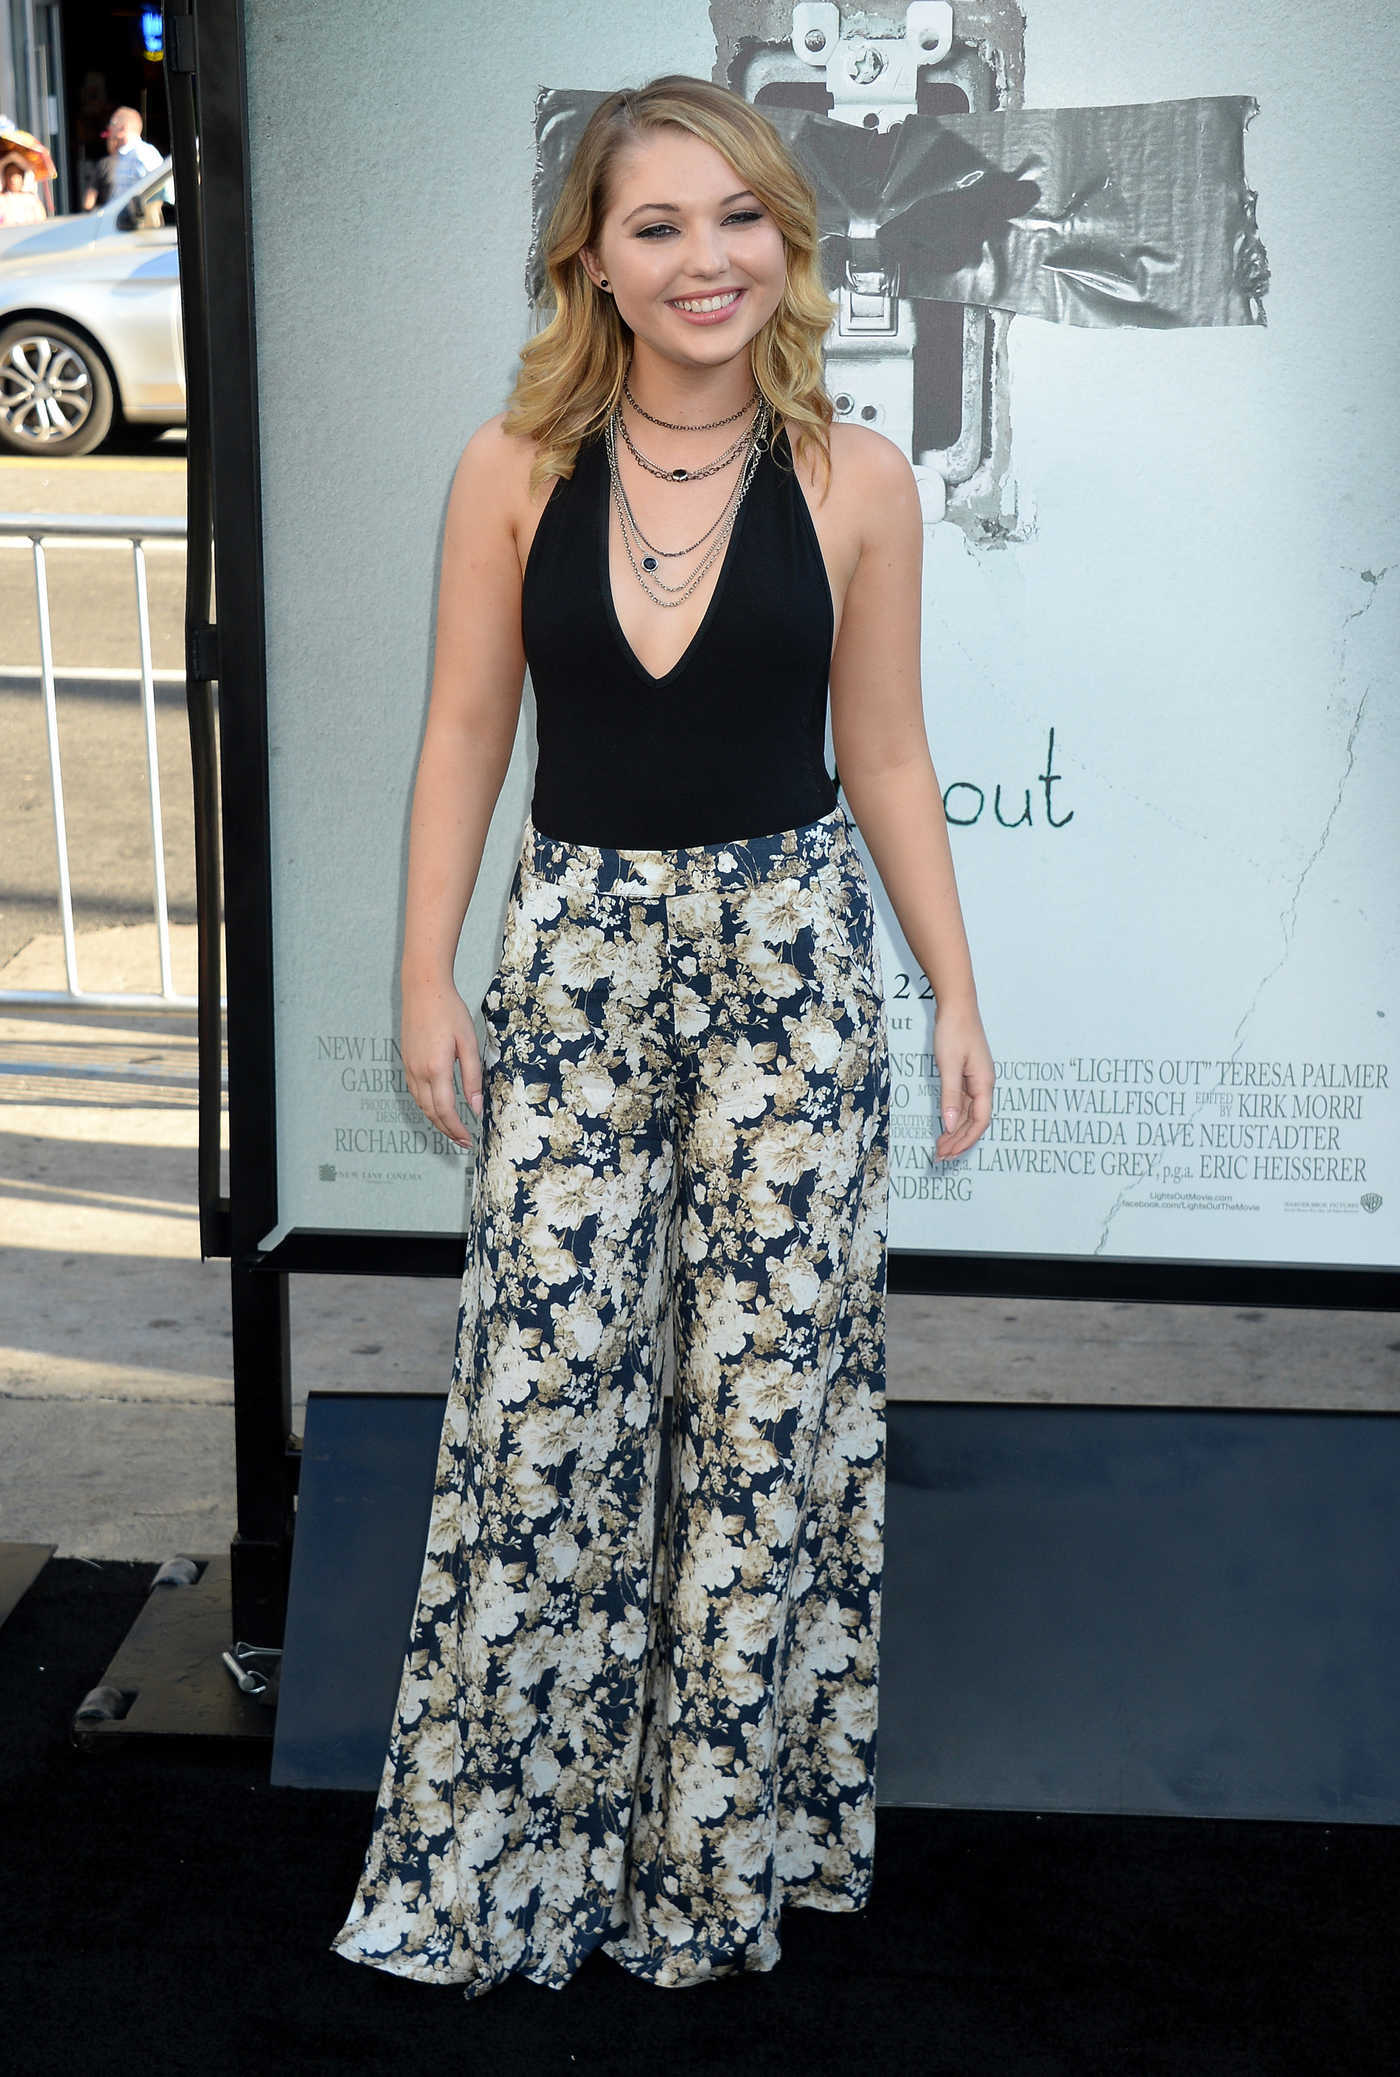 Sammi Hanratty at the Lights Out Premiere in Los Angeles 07/19/2016